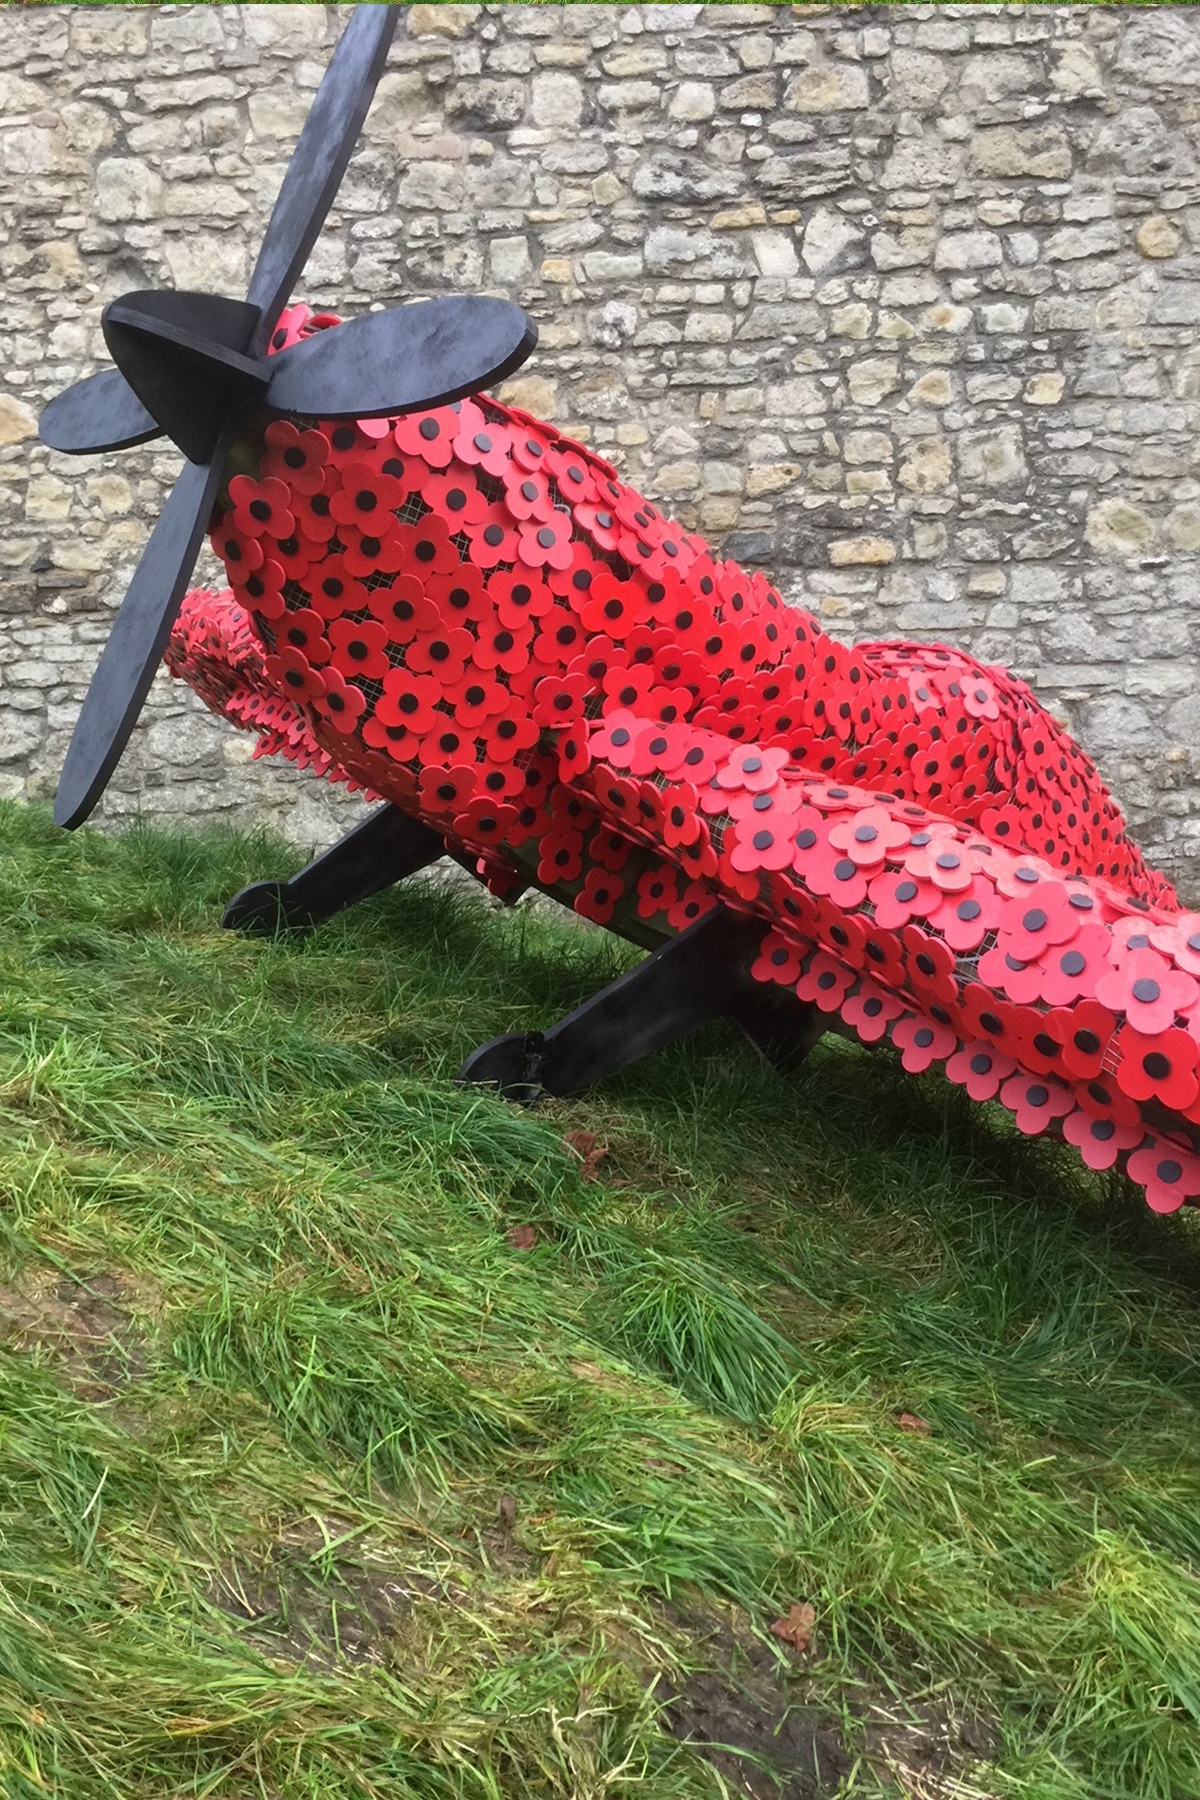 A full size spit fire covered in poppies for remembrance day